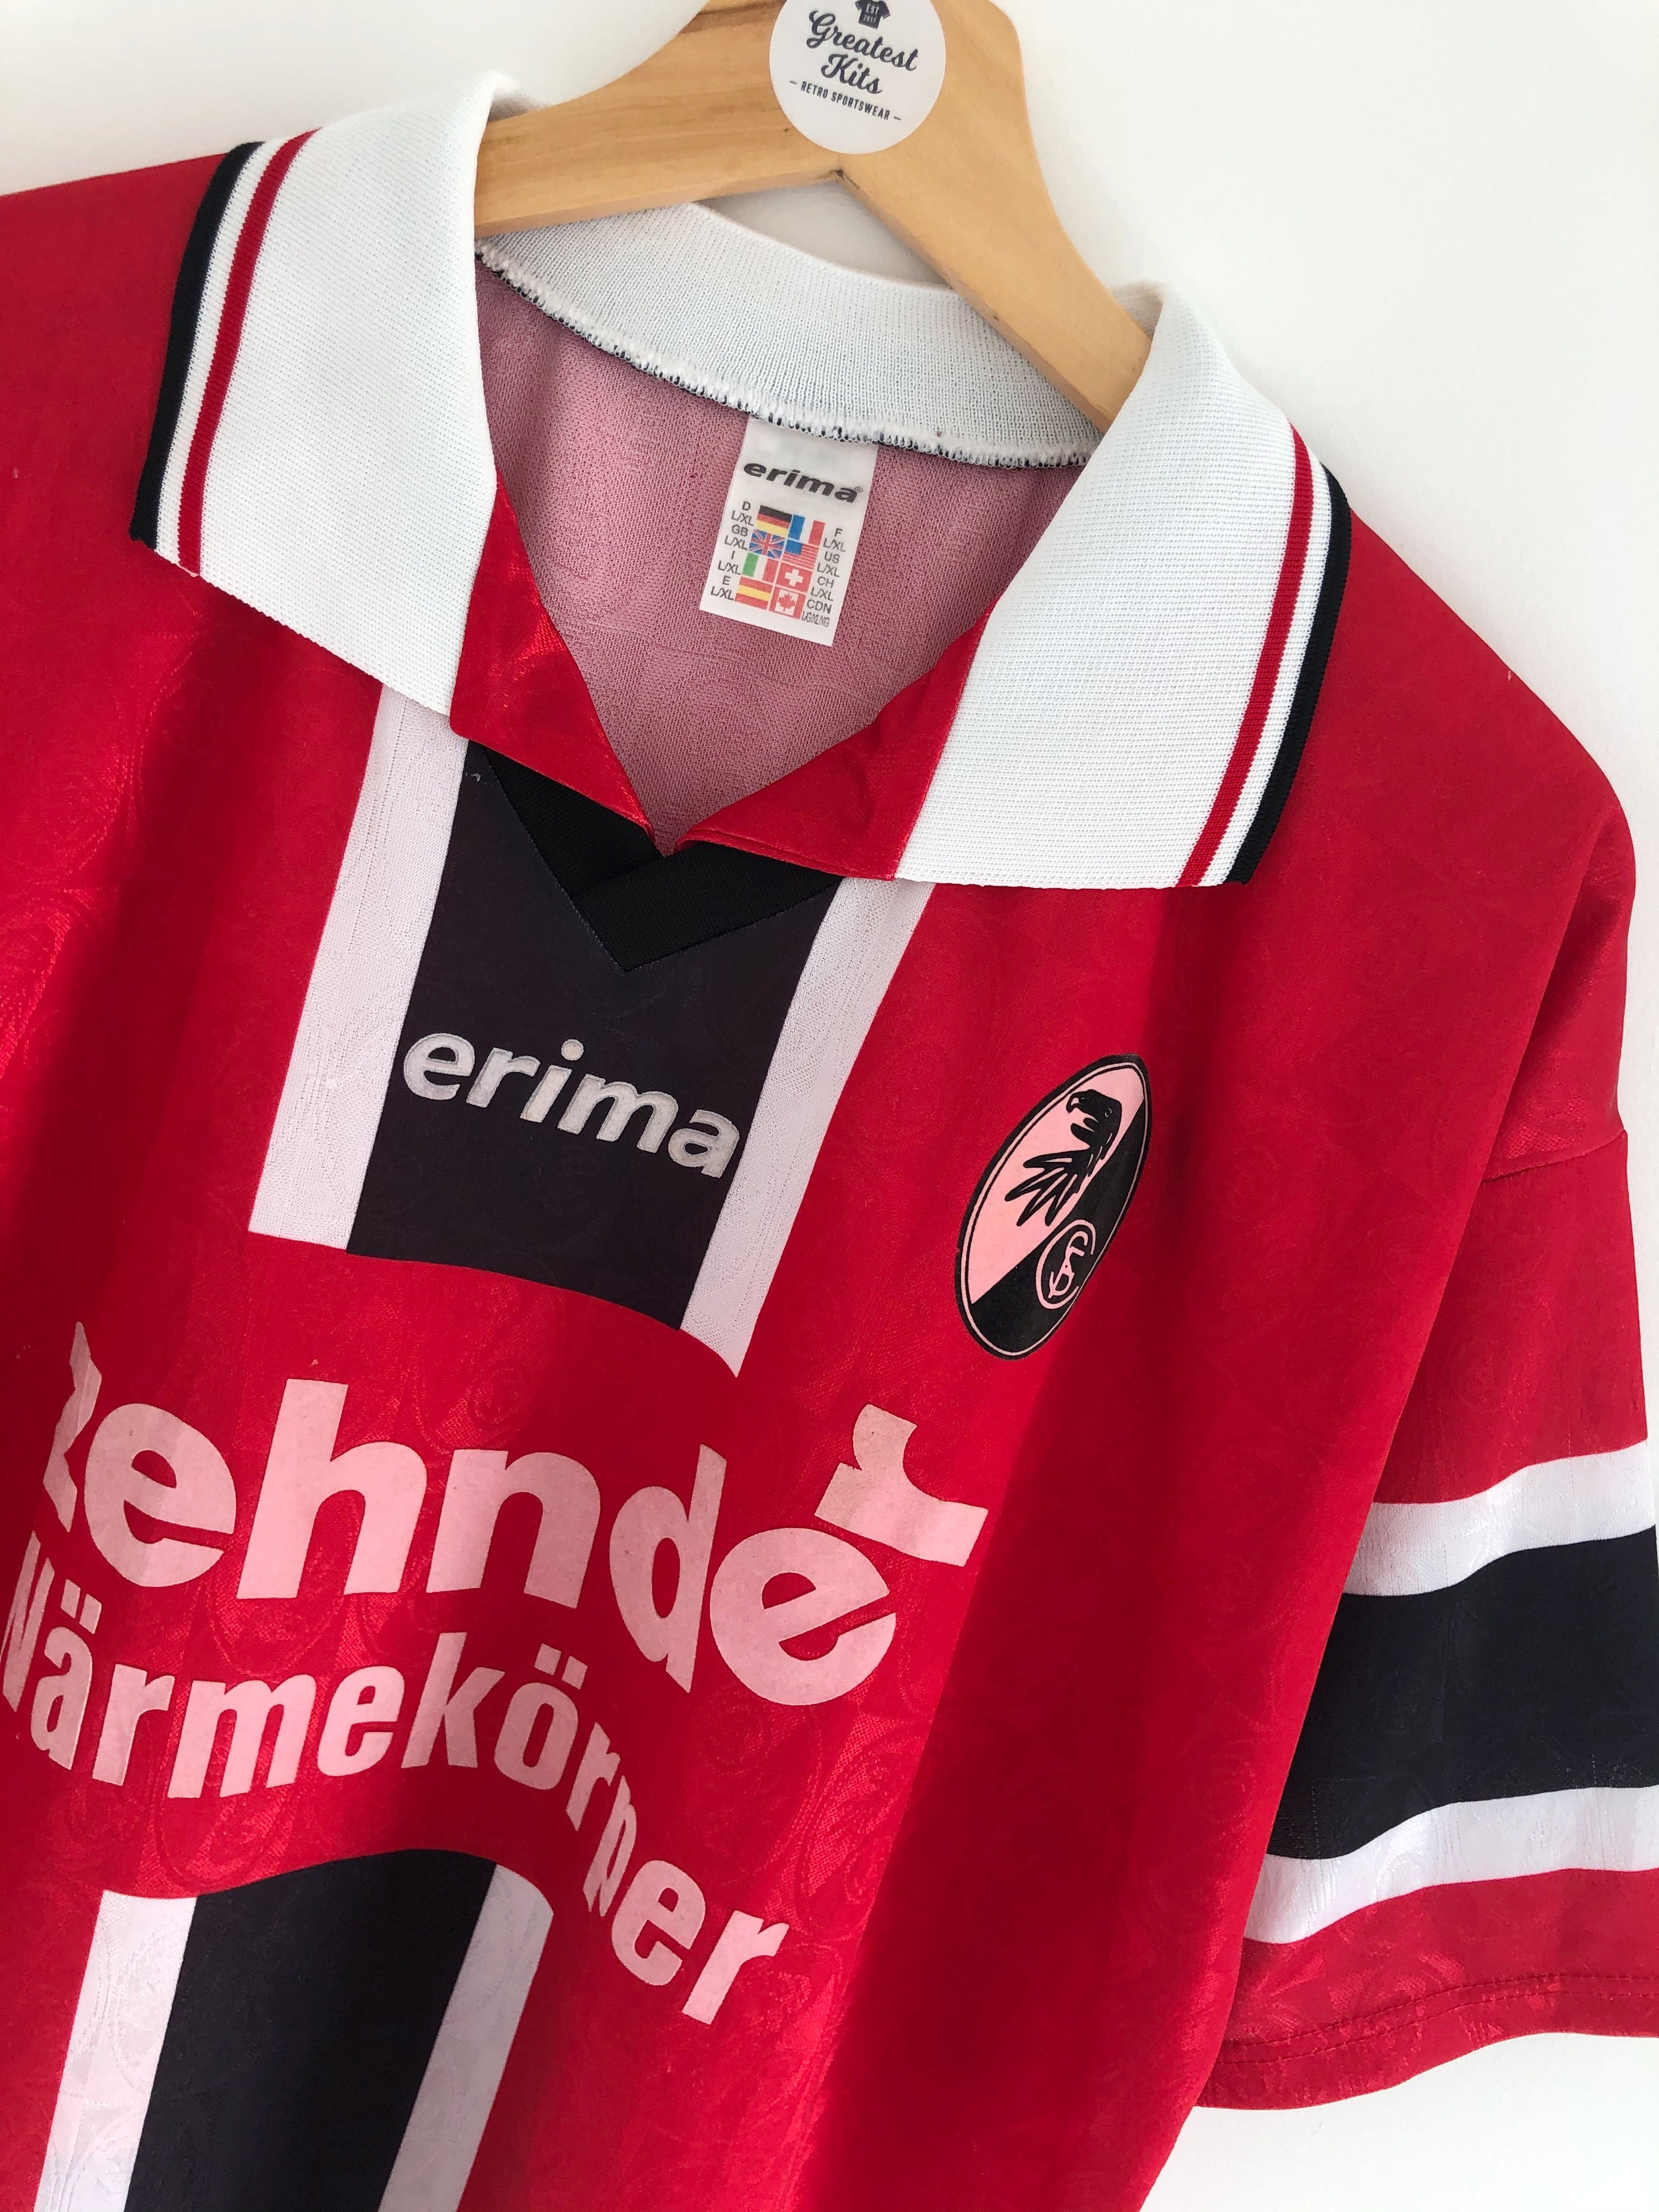 1997/98 Freiburg Home Shirt (L/XL) 8.5/10